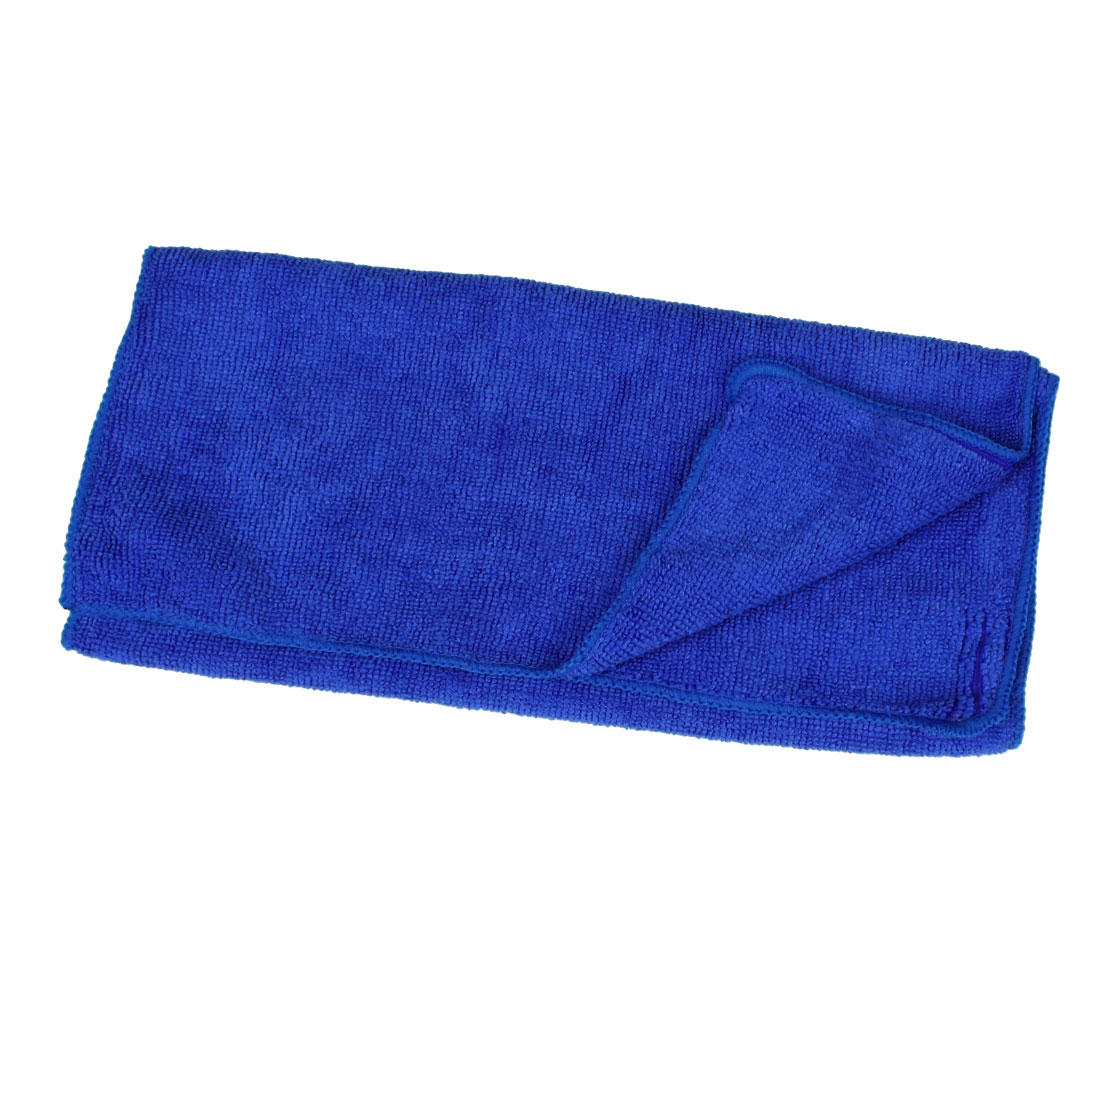 Blue Rectangle Shape Soft Terry Cleaning Towel for Car Truck